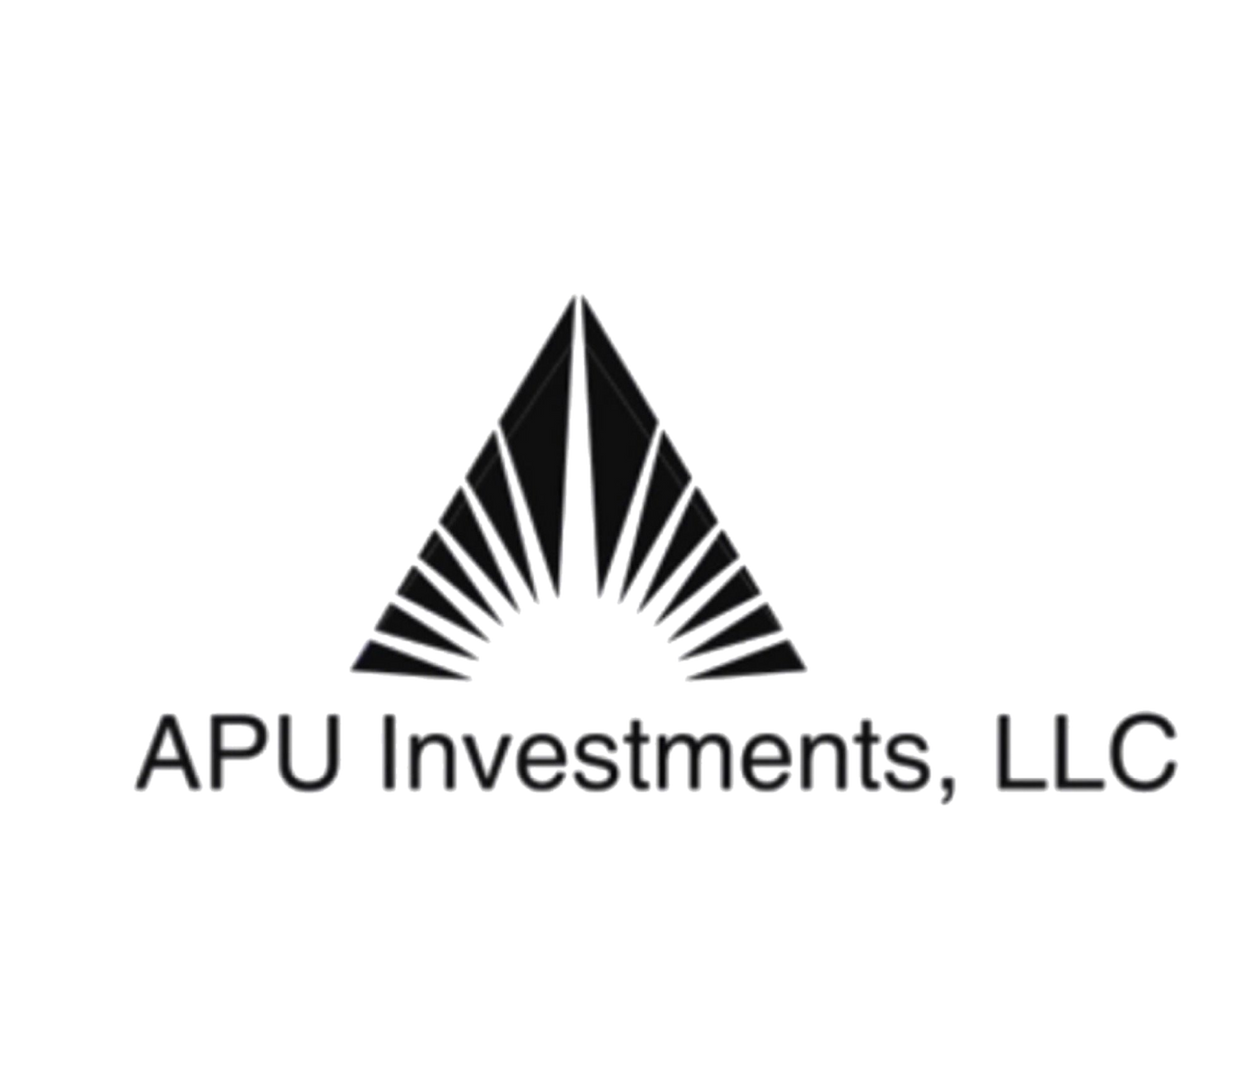 APU Investments, LLc logo